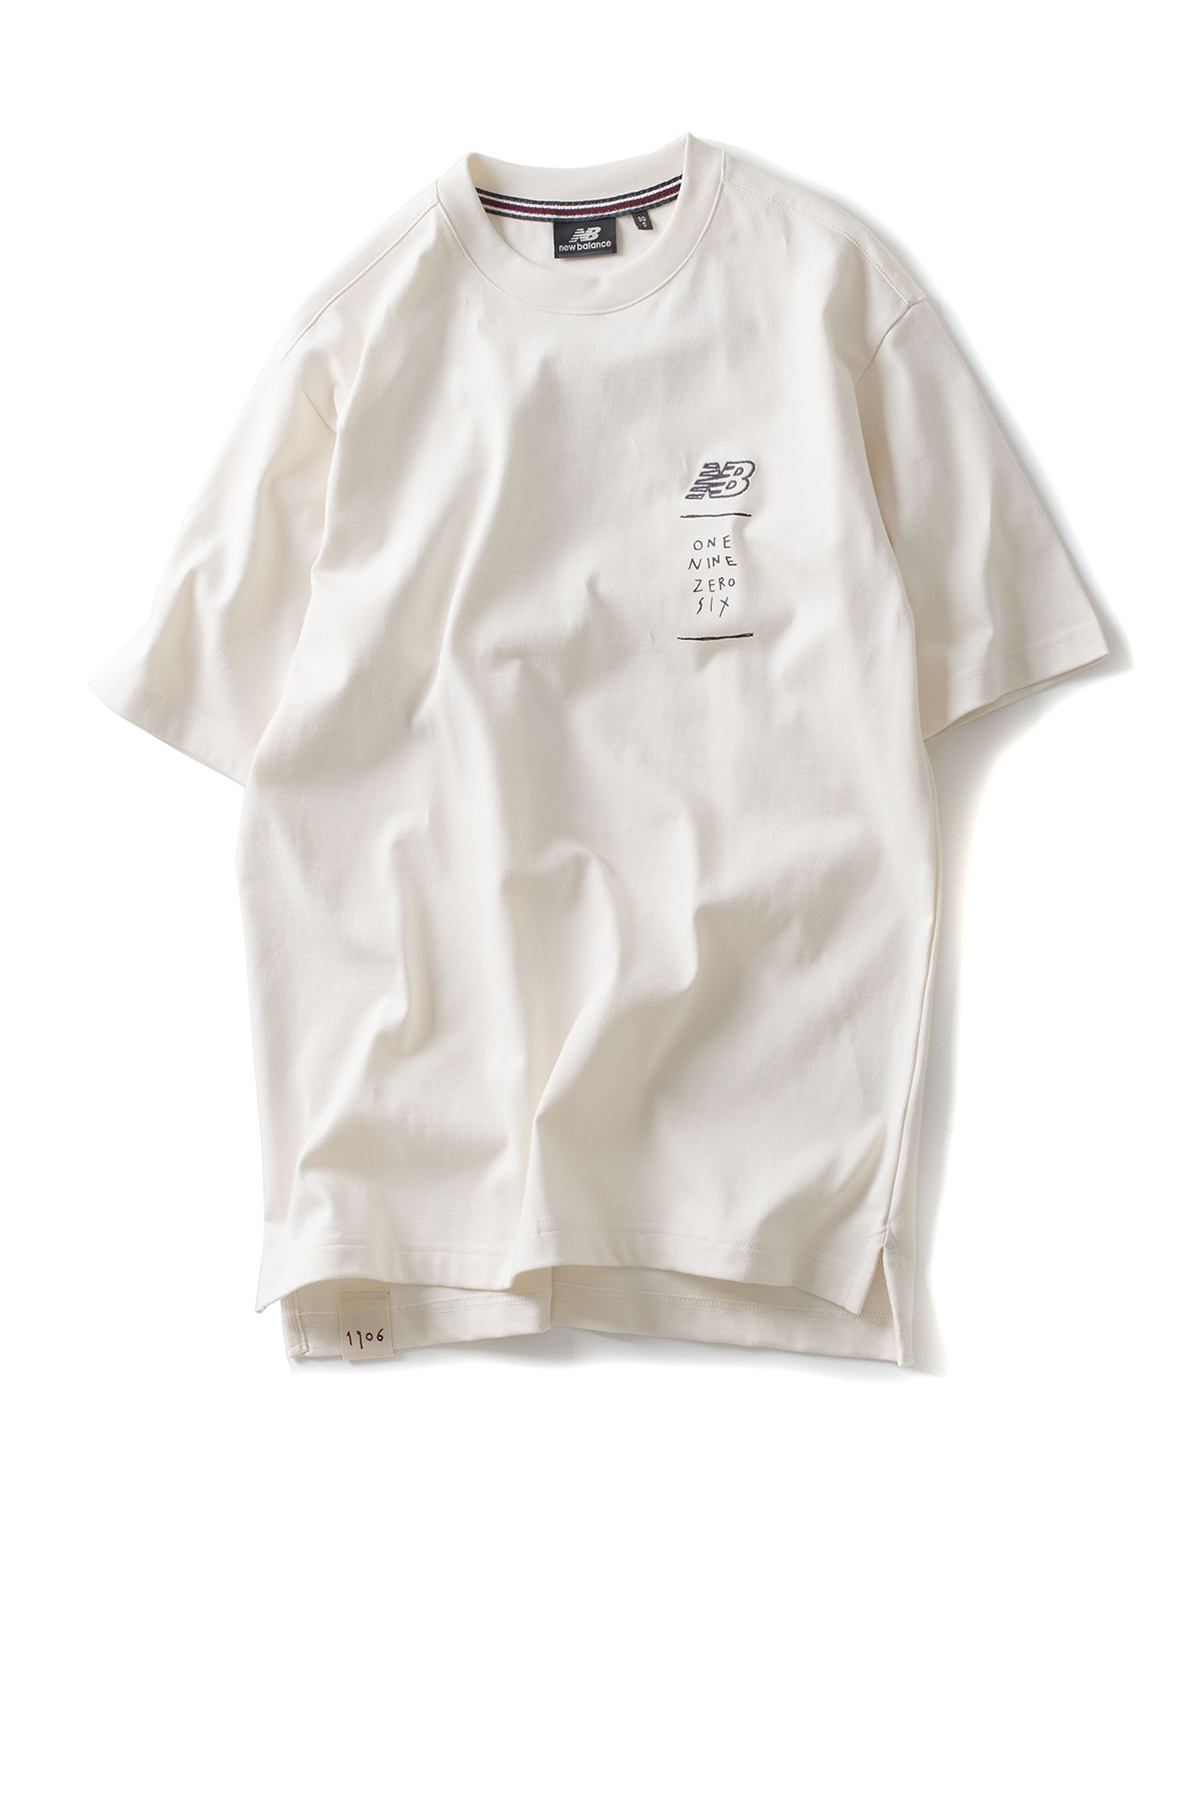 New Balance : UNI Drawing Pack Shoes In Square Tee (Ivory)